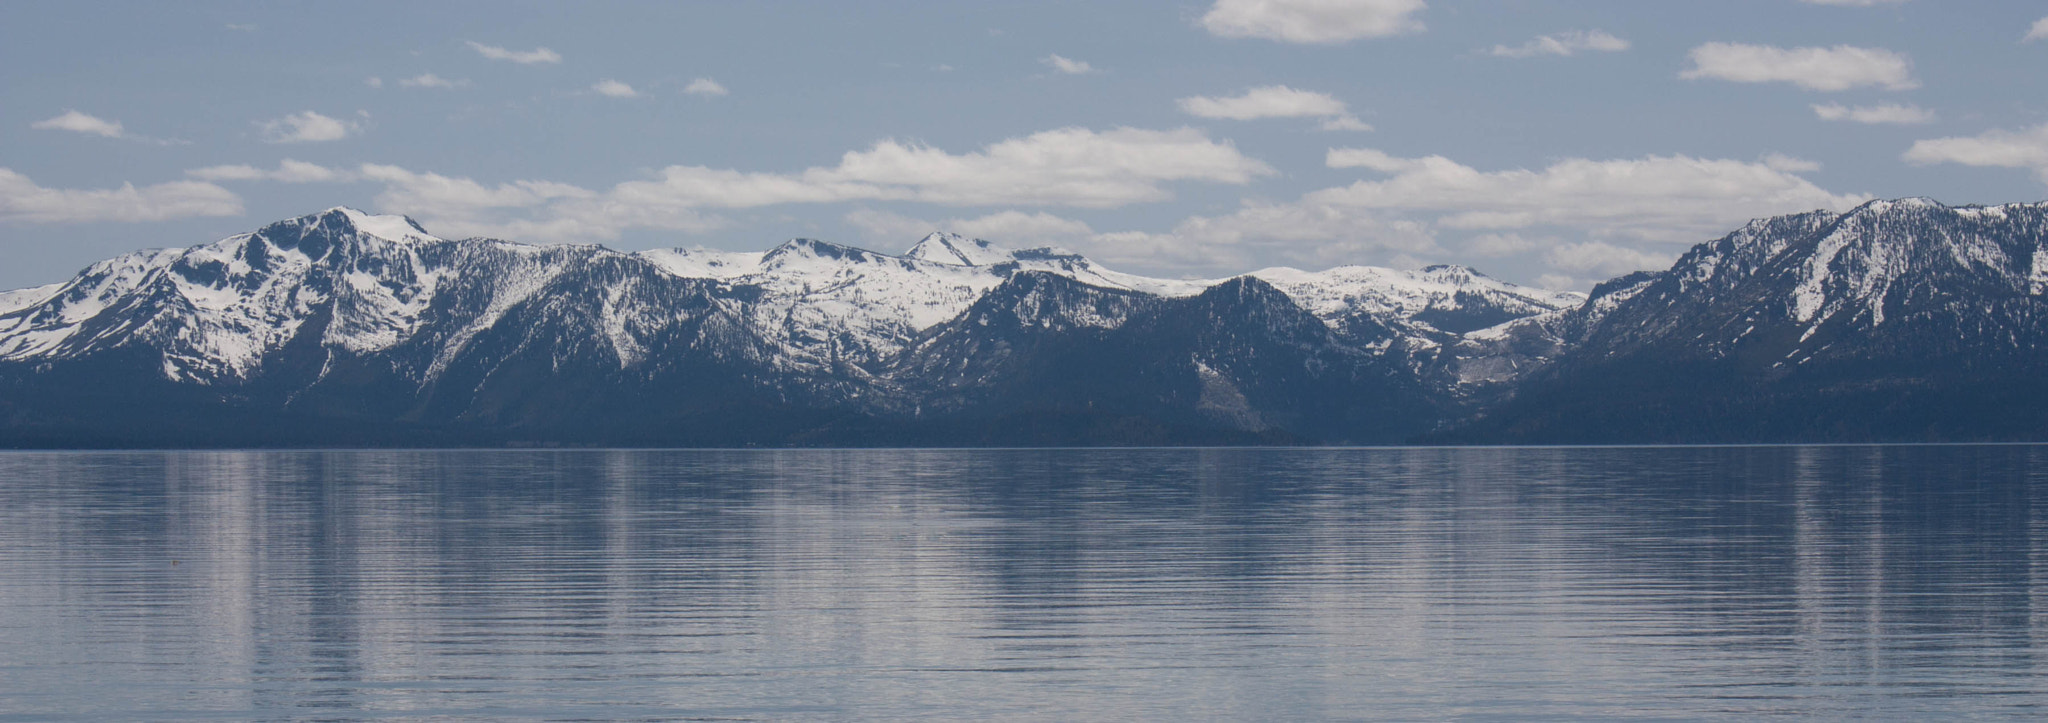 Photograph Lake Tahoe Pano by Carl Mickleburgh on 500px